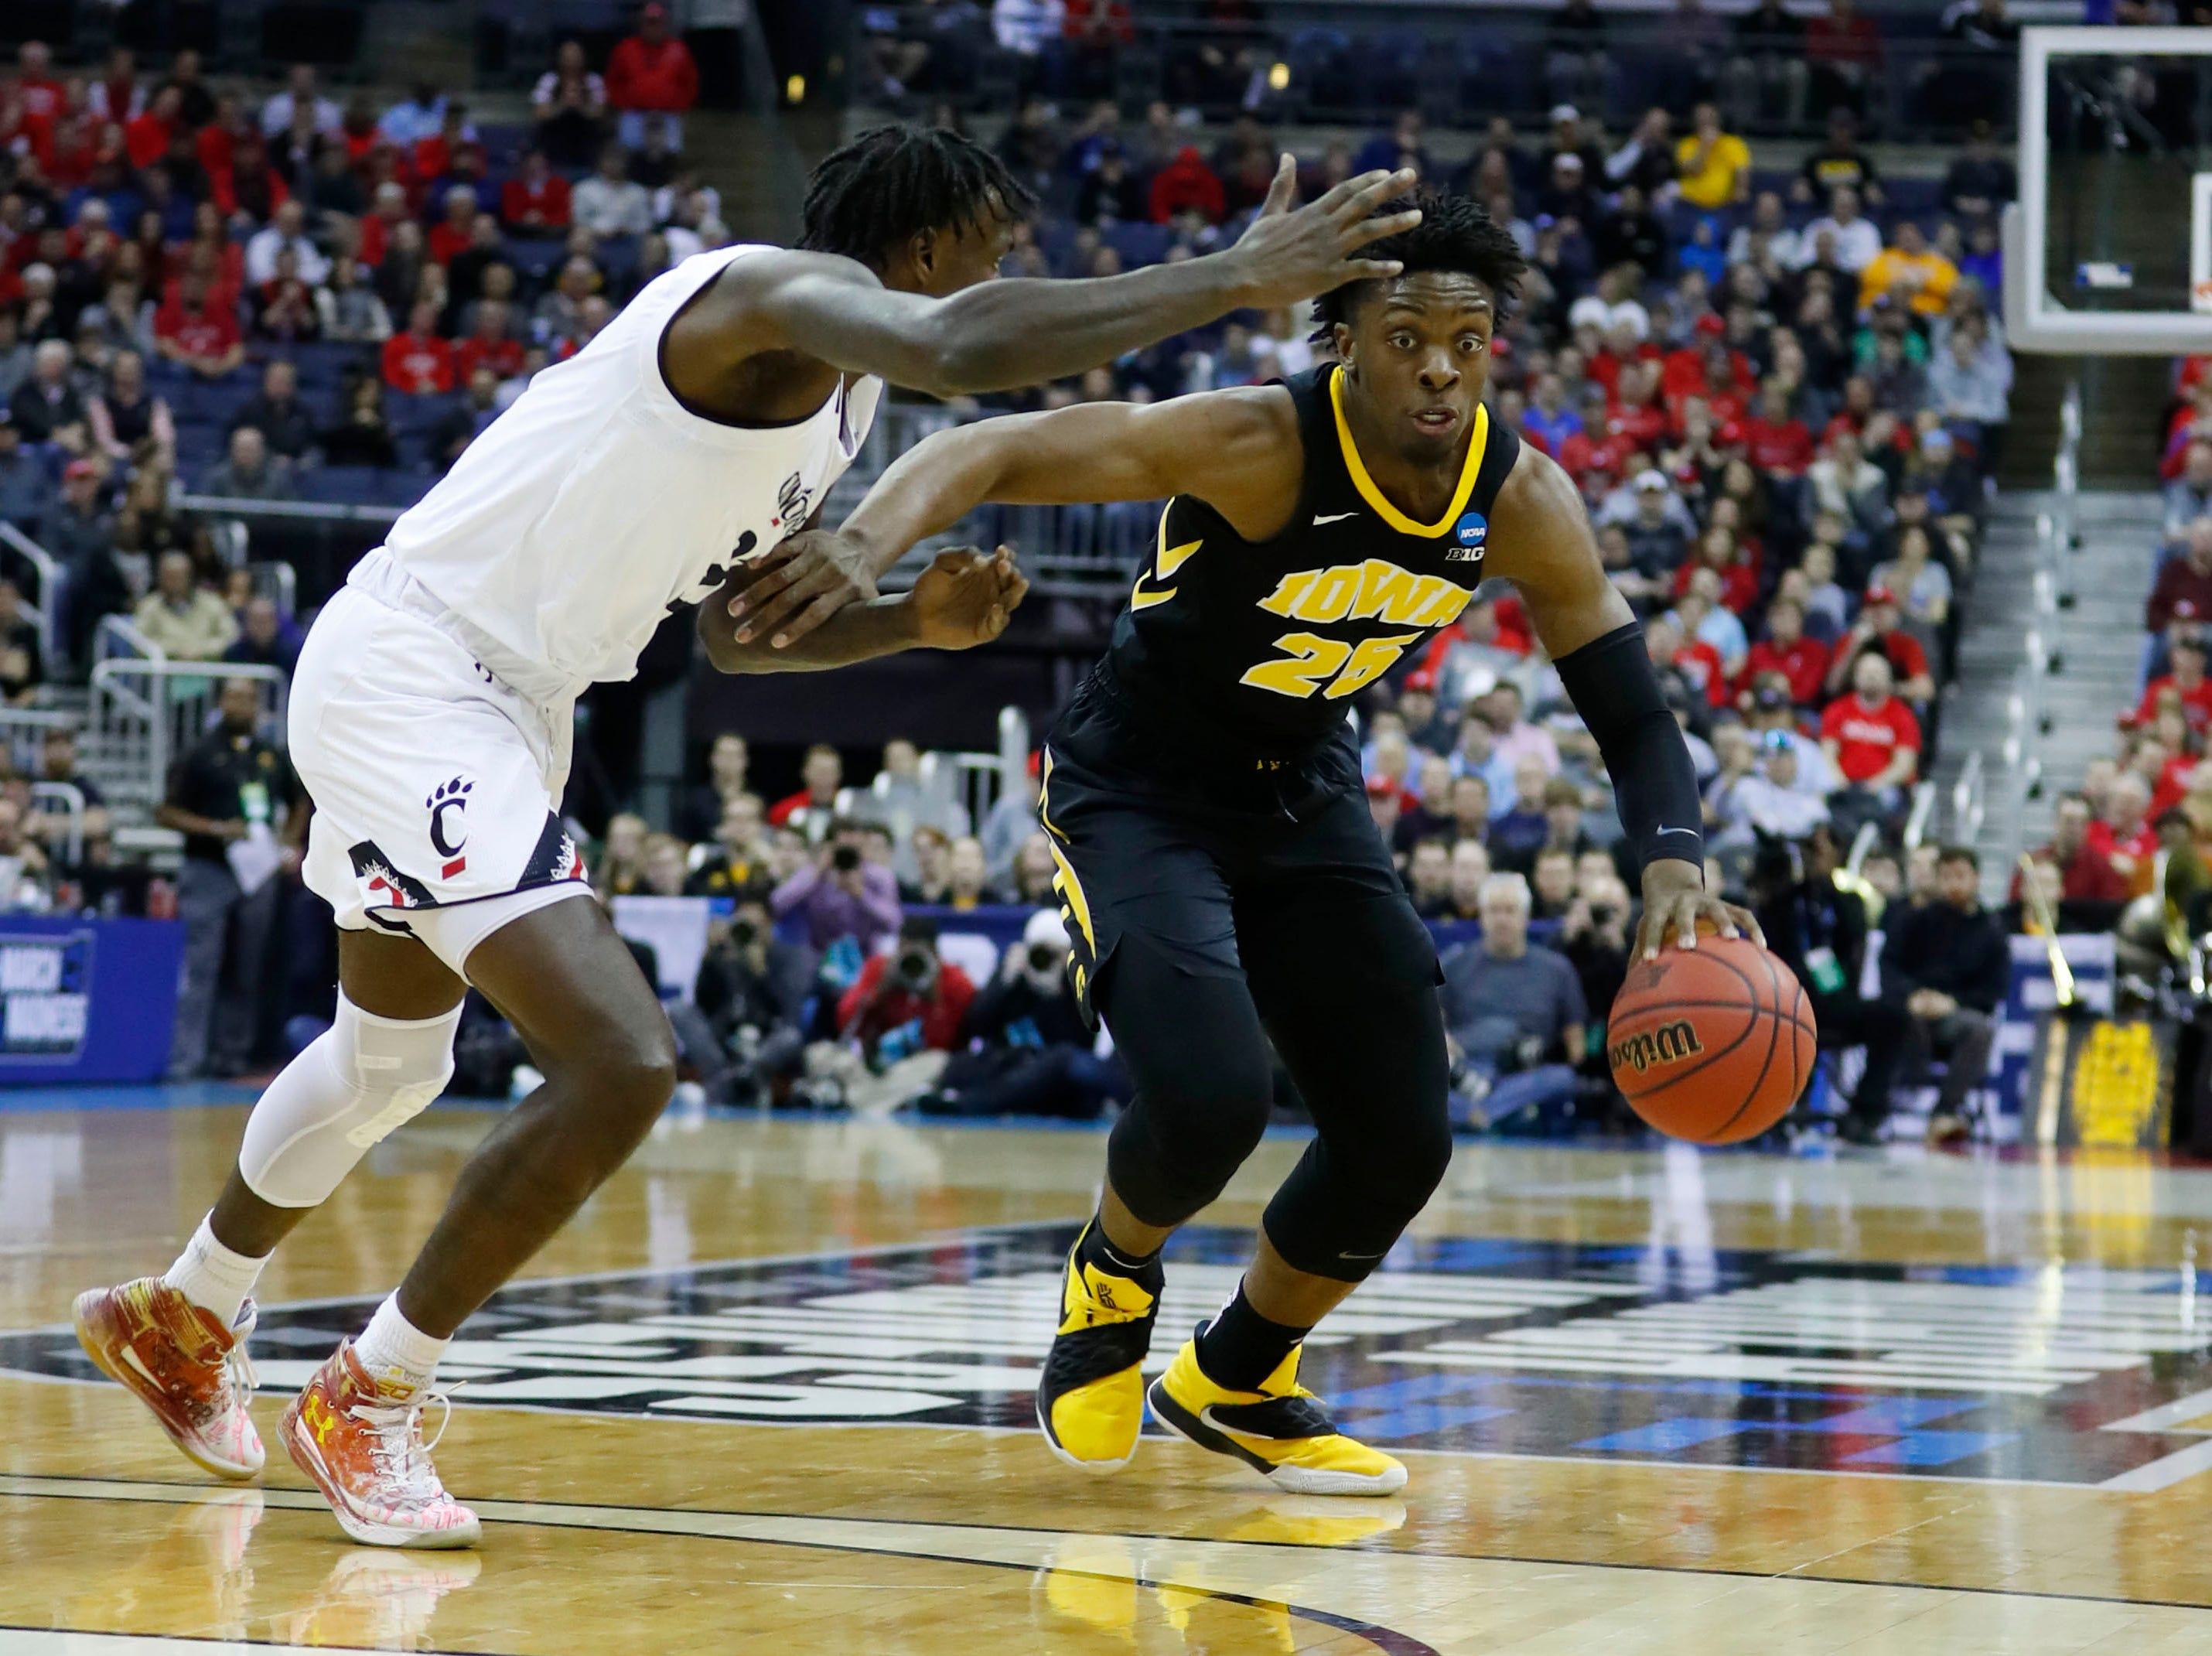 Mar 22, 2019; Columbus, OH, USA; Iowa Hawkeyes forward Tyler Cook (25) drives down the court defended by Cincinnati Bearcats center Nysier Brooks (33) in the first round of the 2019 NCAA Tournament at Nationwide Arena. Mandatory Credit: Rick Osentoski-USA TODAY Sports